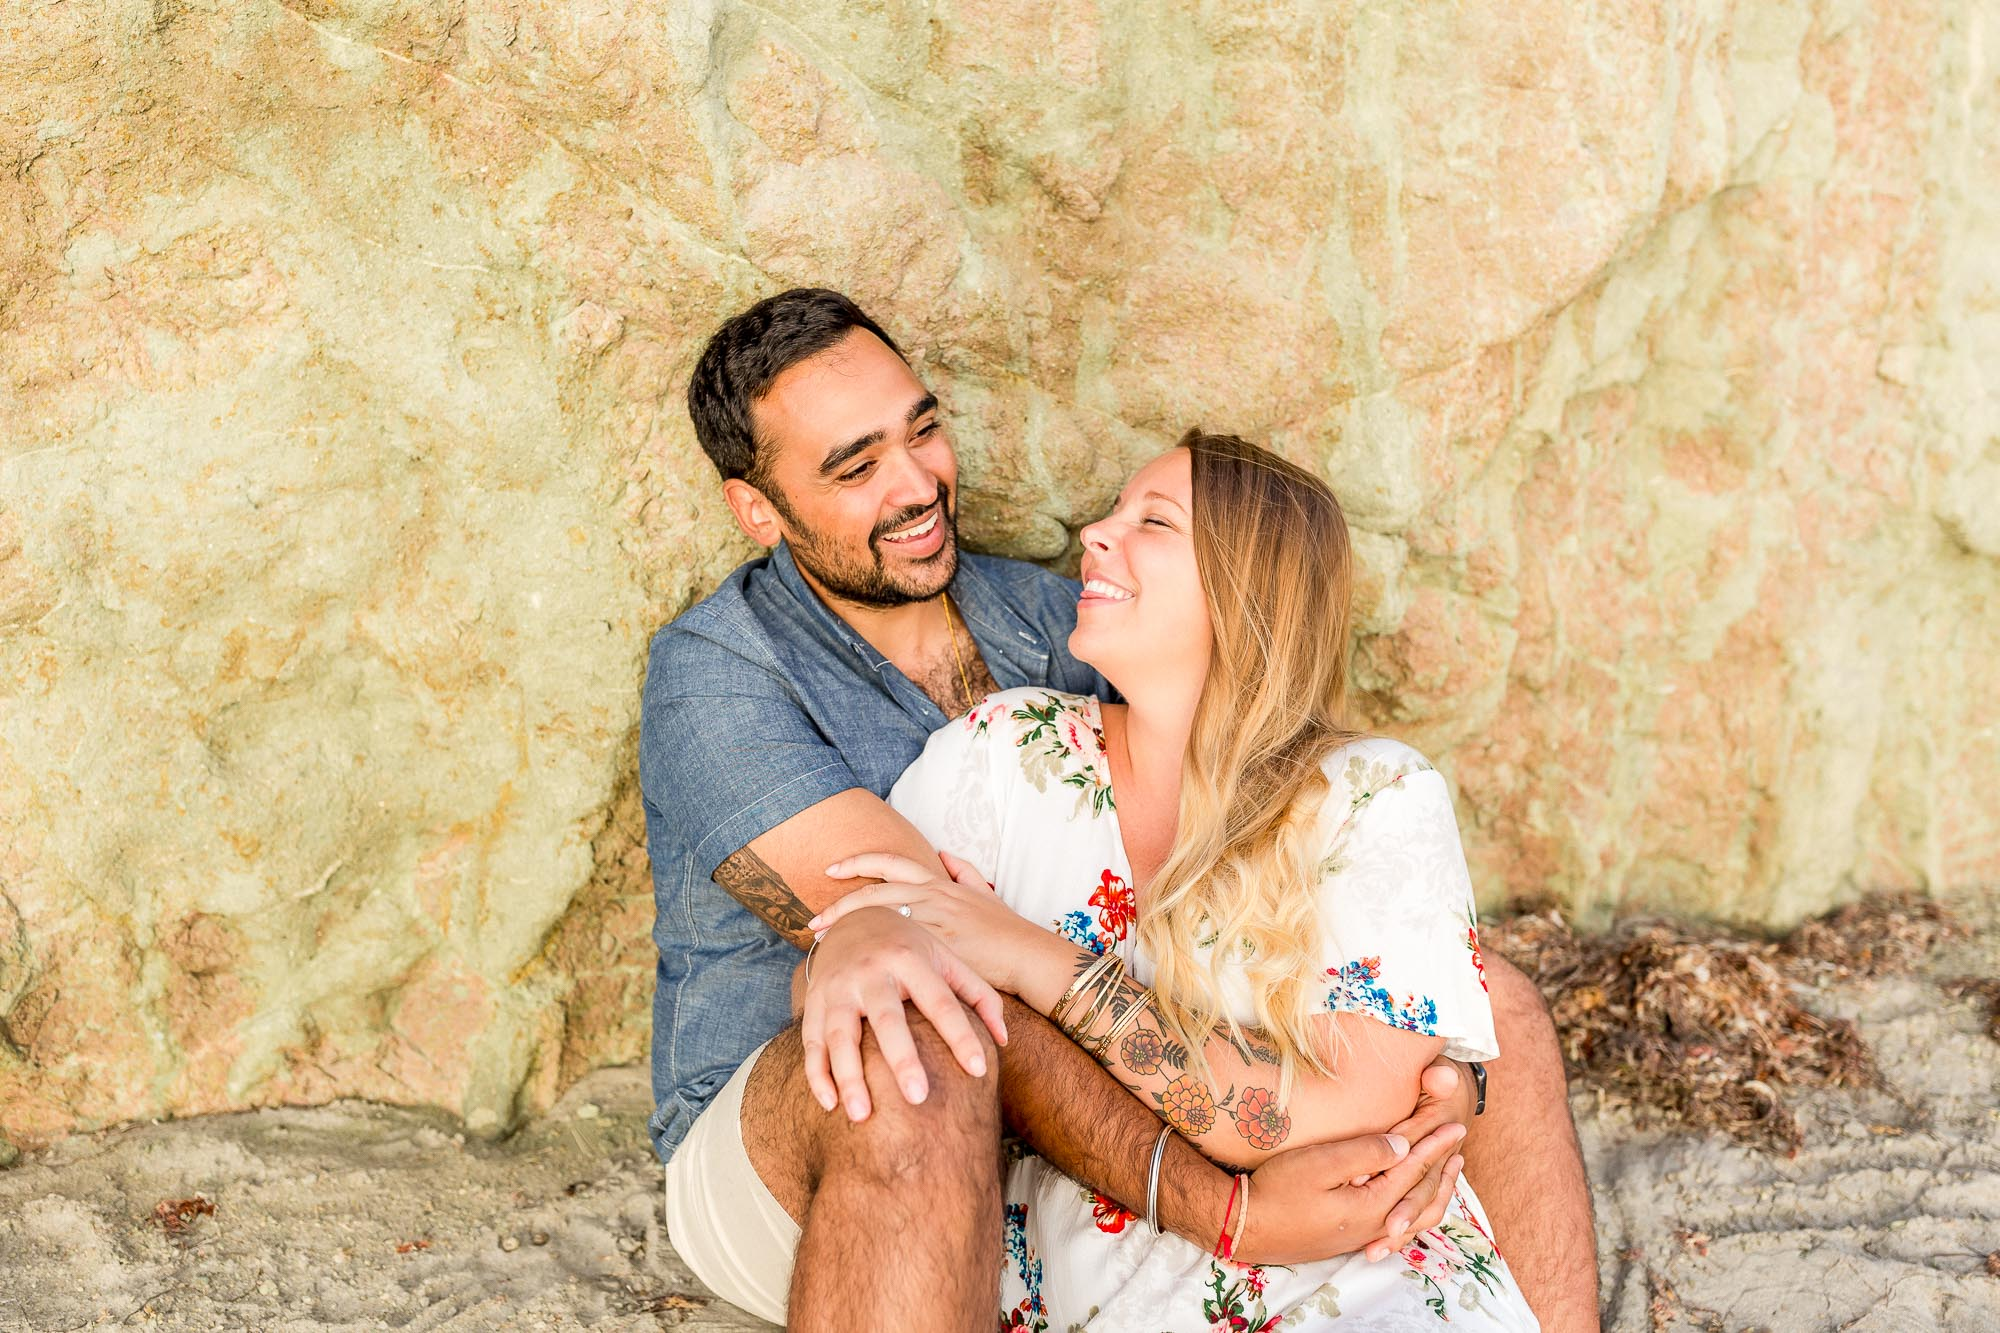 Justine_Puneet_Cardiff_Engagement_Session_163.jpg